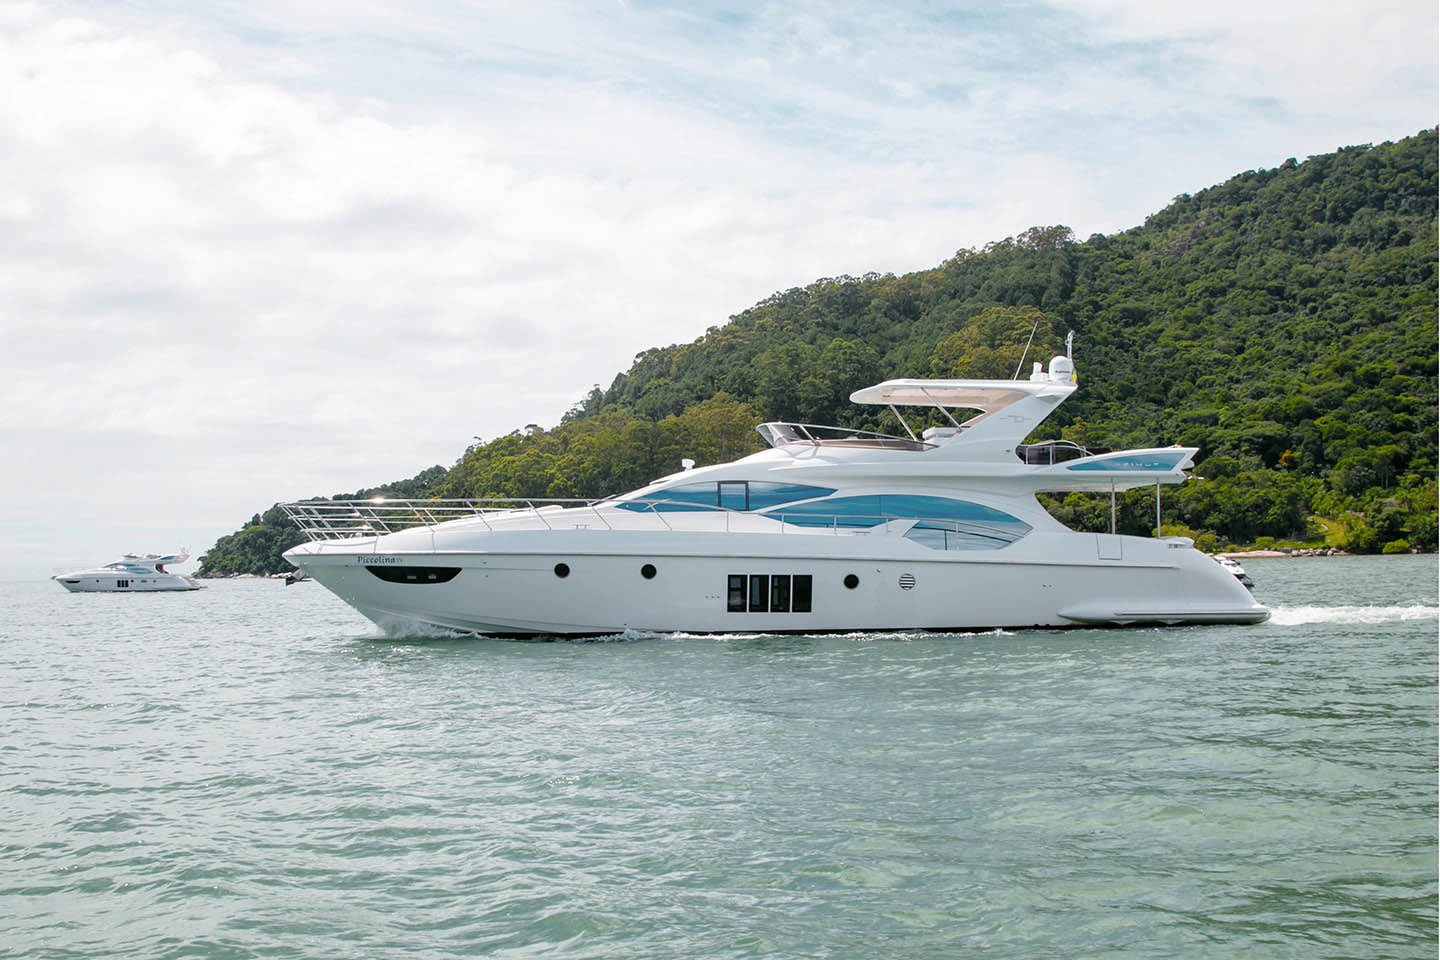 Azimut 70 - California - Newport Beach